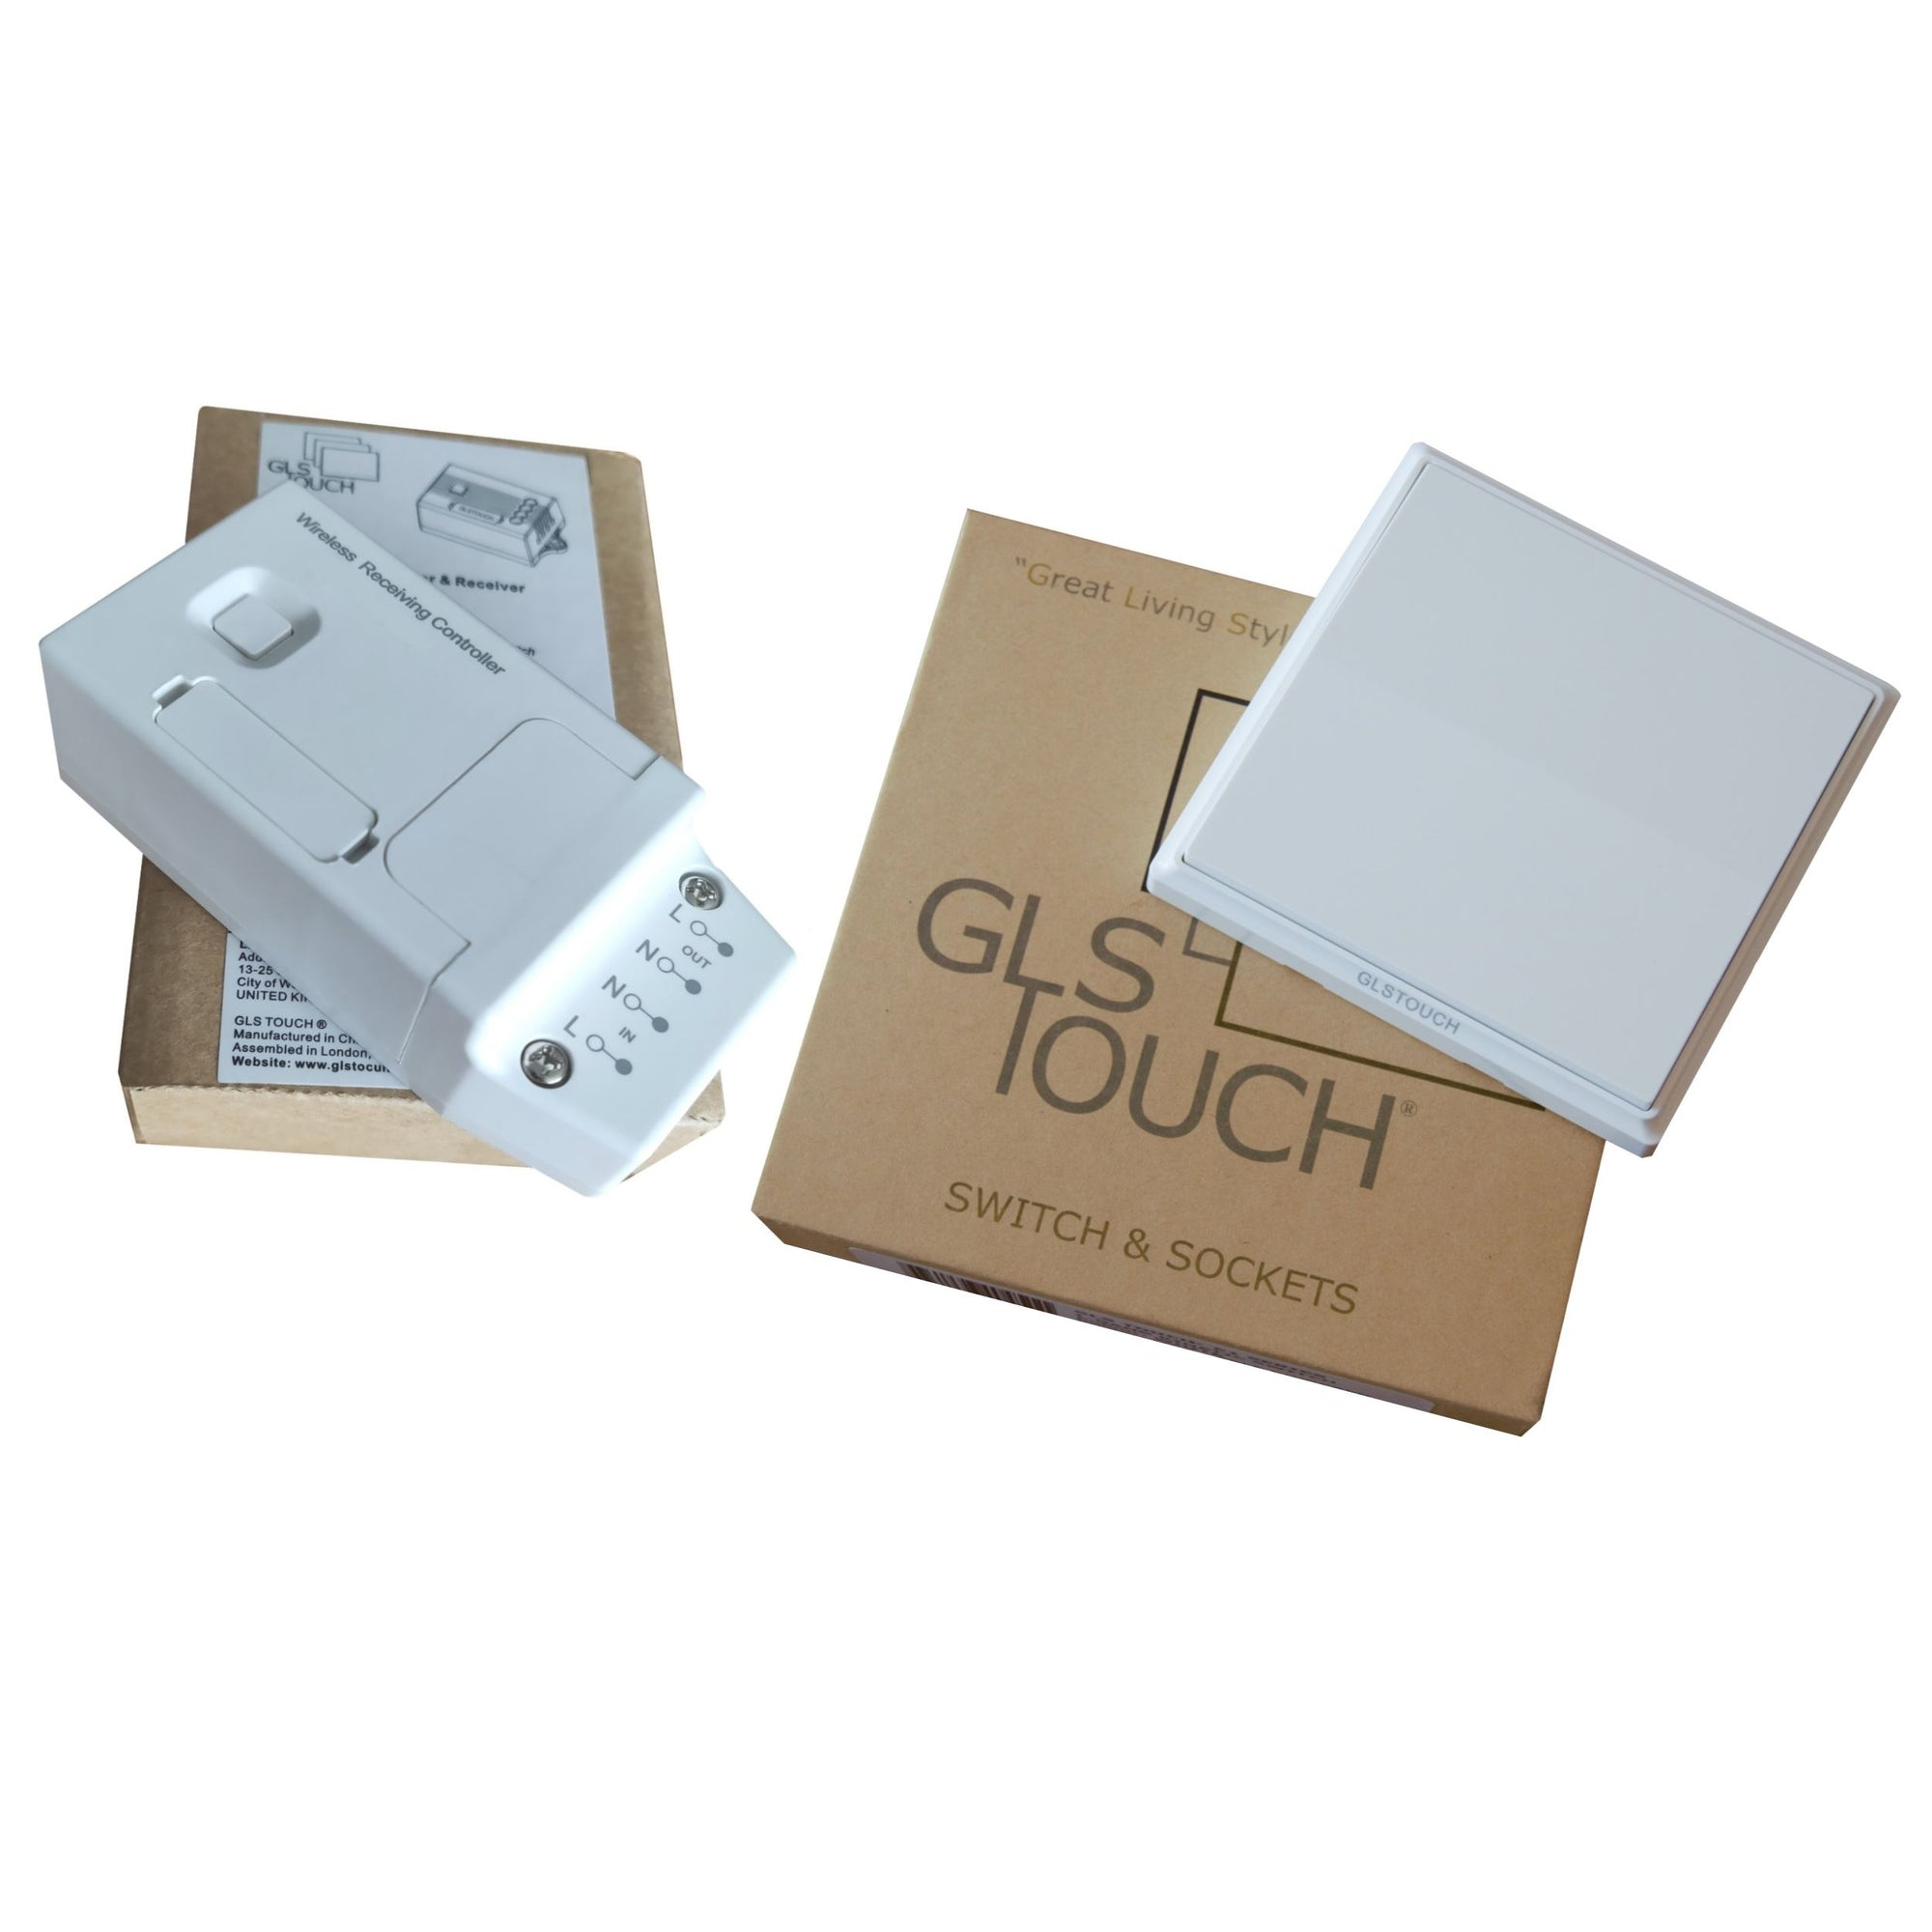 GLSTouch Kinetic RF Wireless 1 Gang 1 Way Light Switch Kit Pack